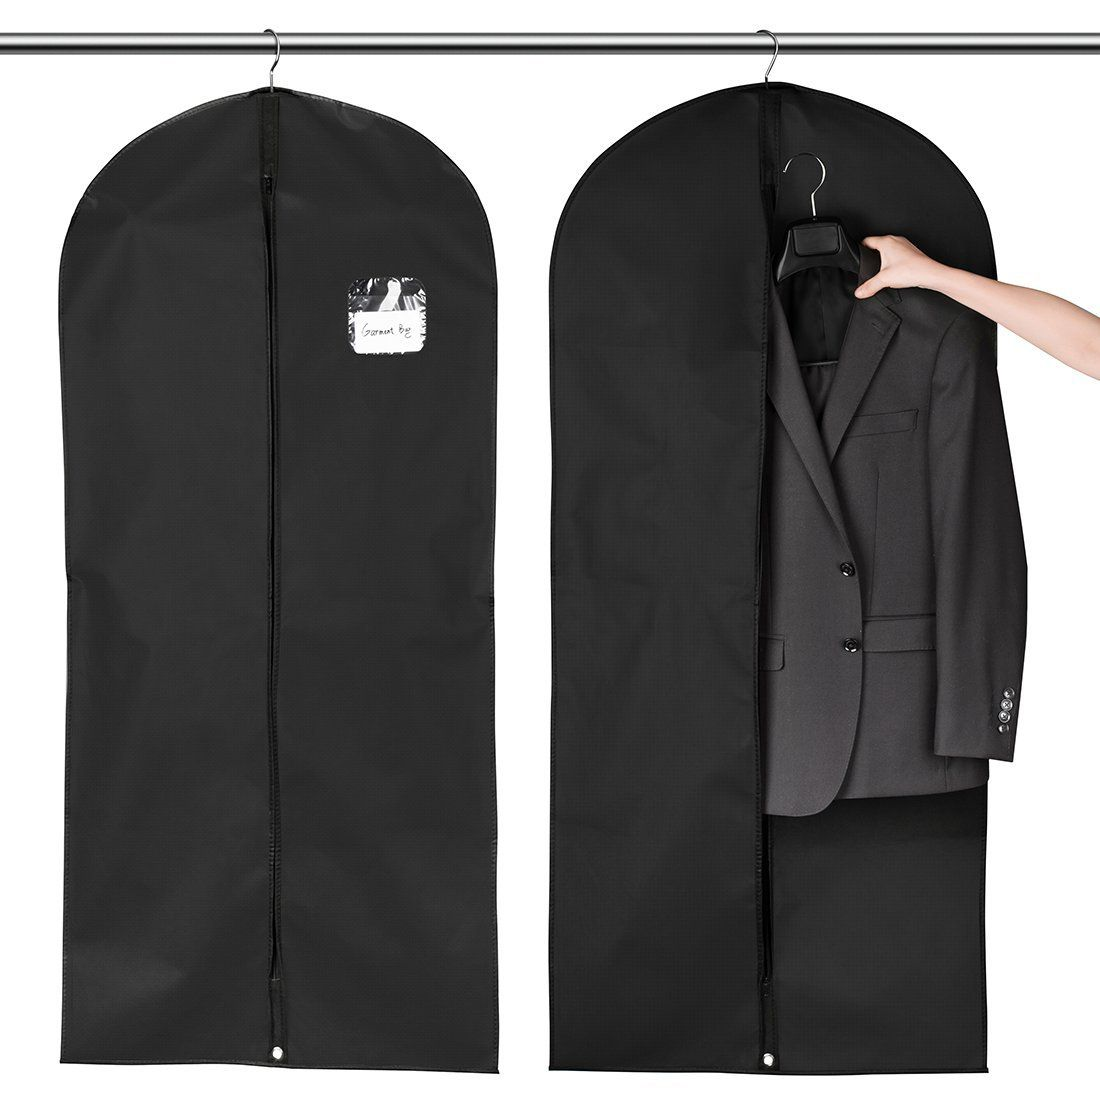 Best Value  FU GLOBAL Garment Bag Breathable Suit Bag 83ea9509b8